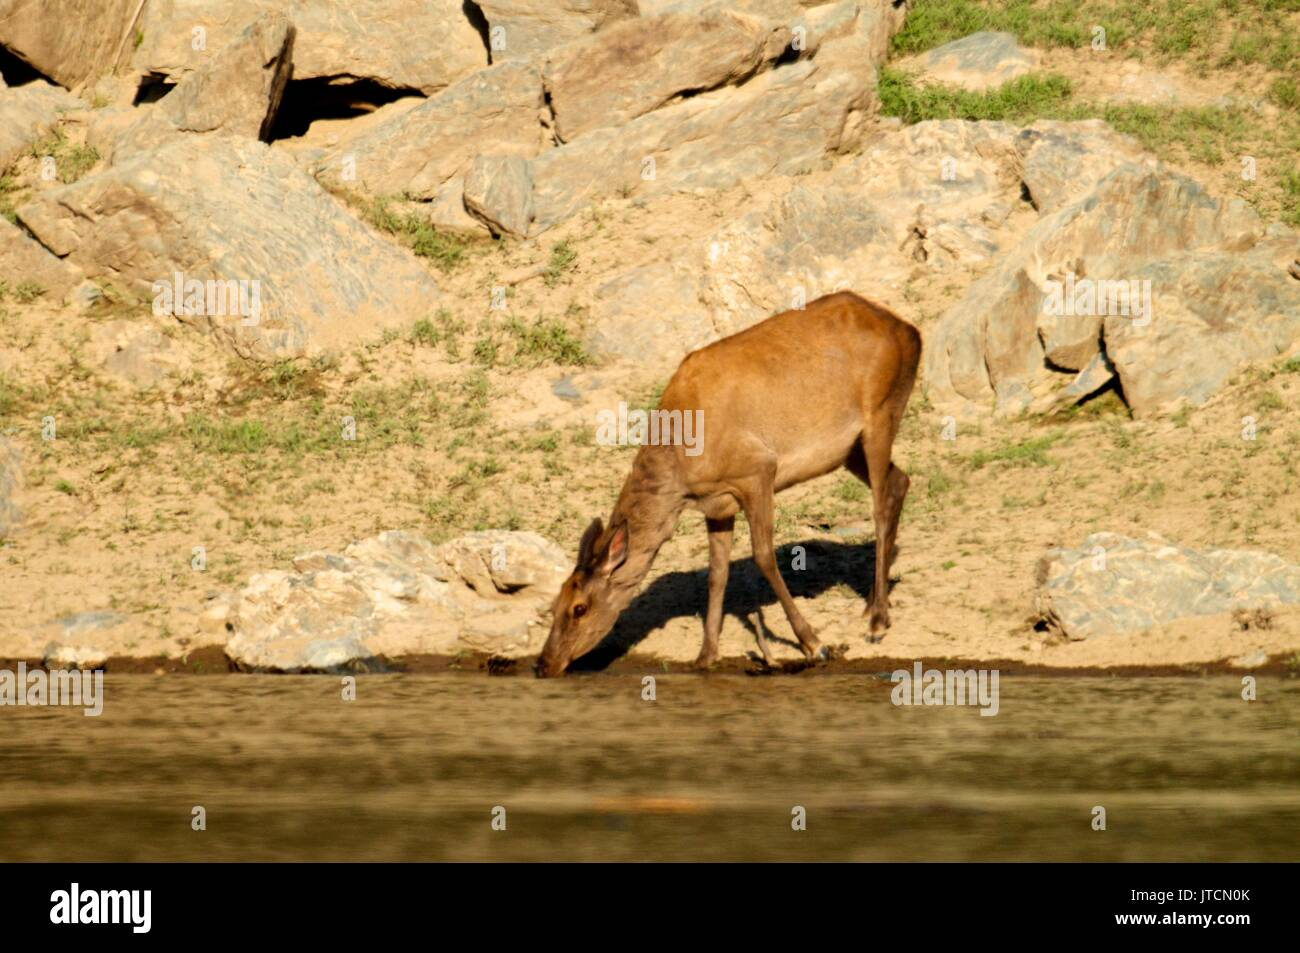 The deer at the watering place Stock Photo